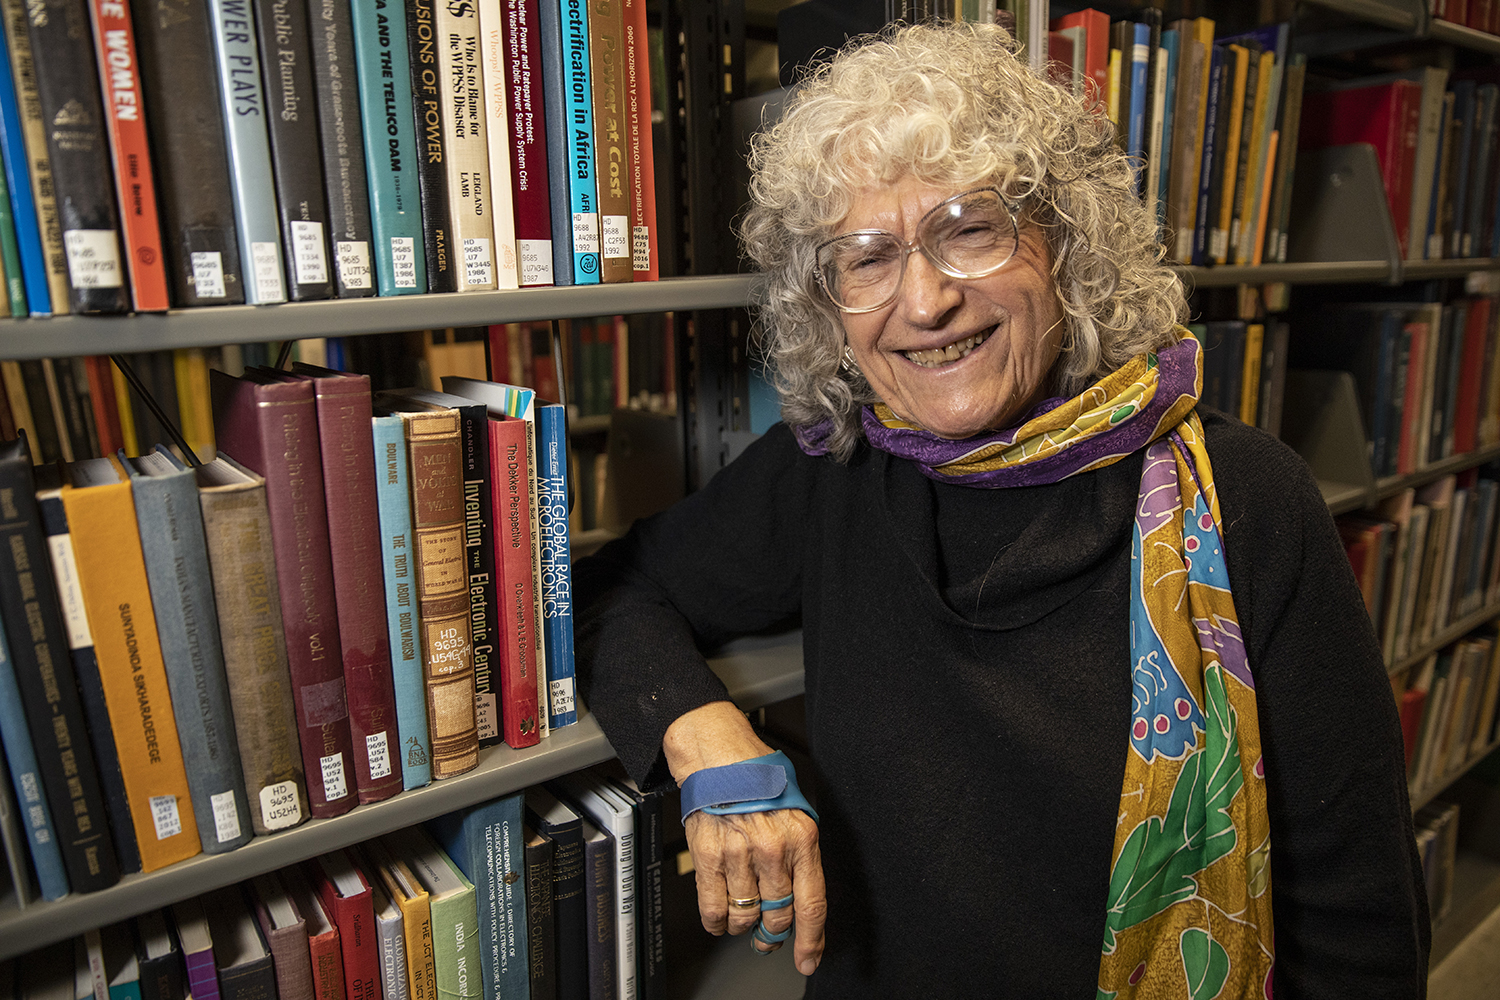 Linda Kerber, recently elected to the Council of the American Philosophical Society, poses for a portrait in the University of Iowa's main library on October 15, 2019. Among Kerber's accomplishments are fellowships with the National Endowment for the Humanities, and a Guggenheim Memorial fellowship.